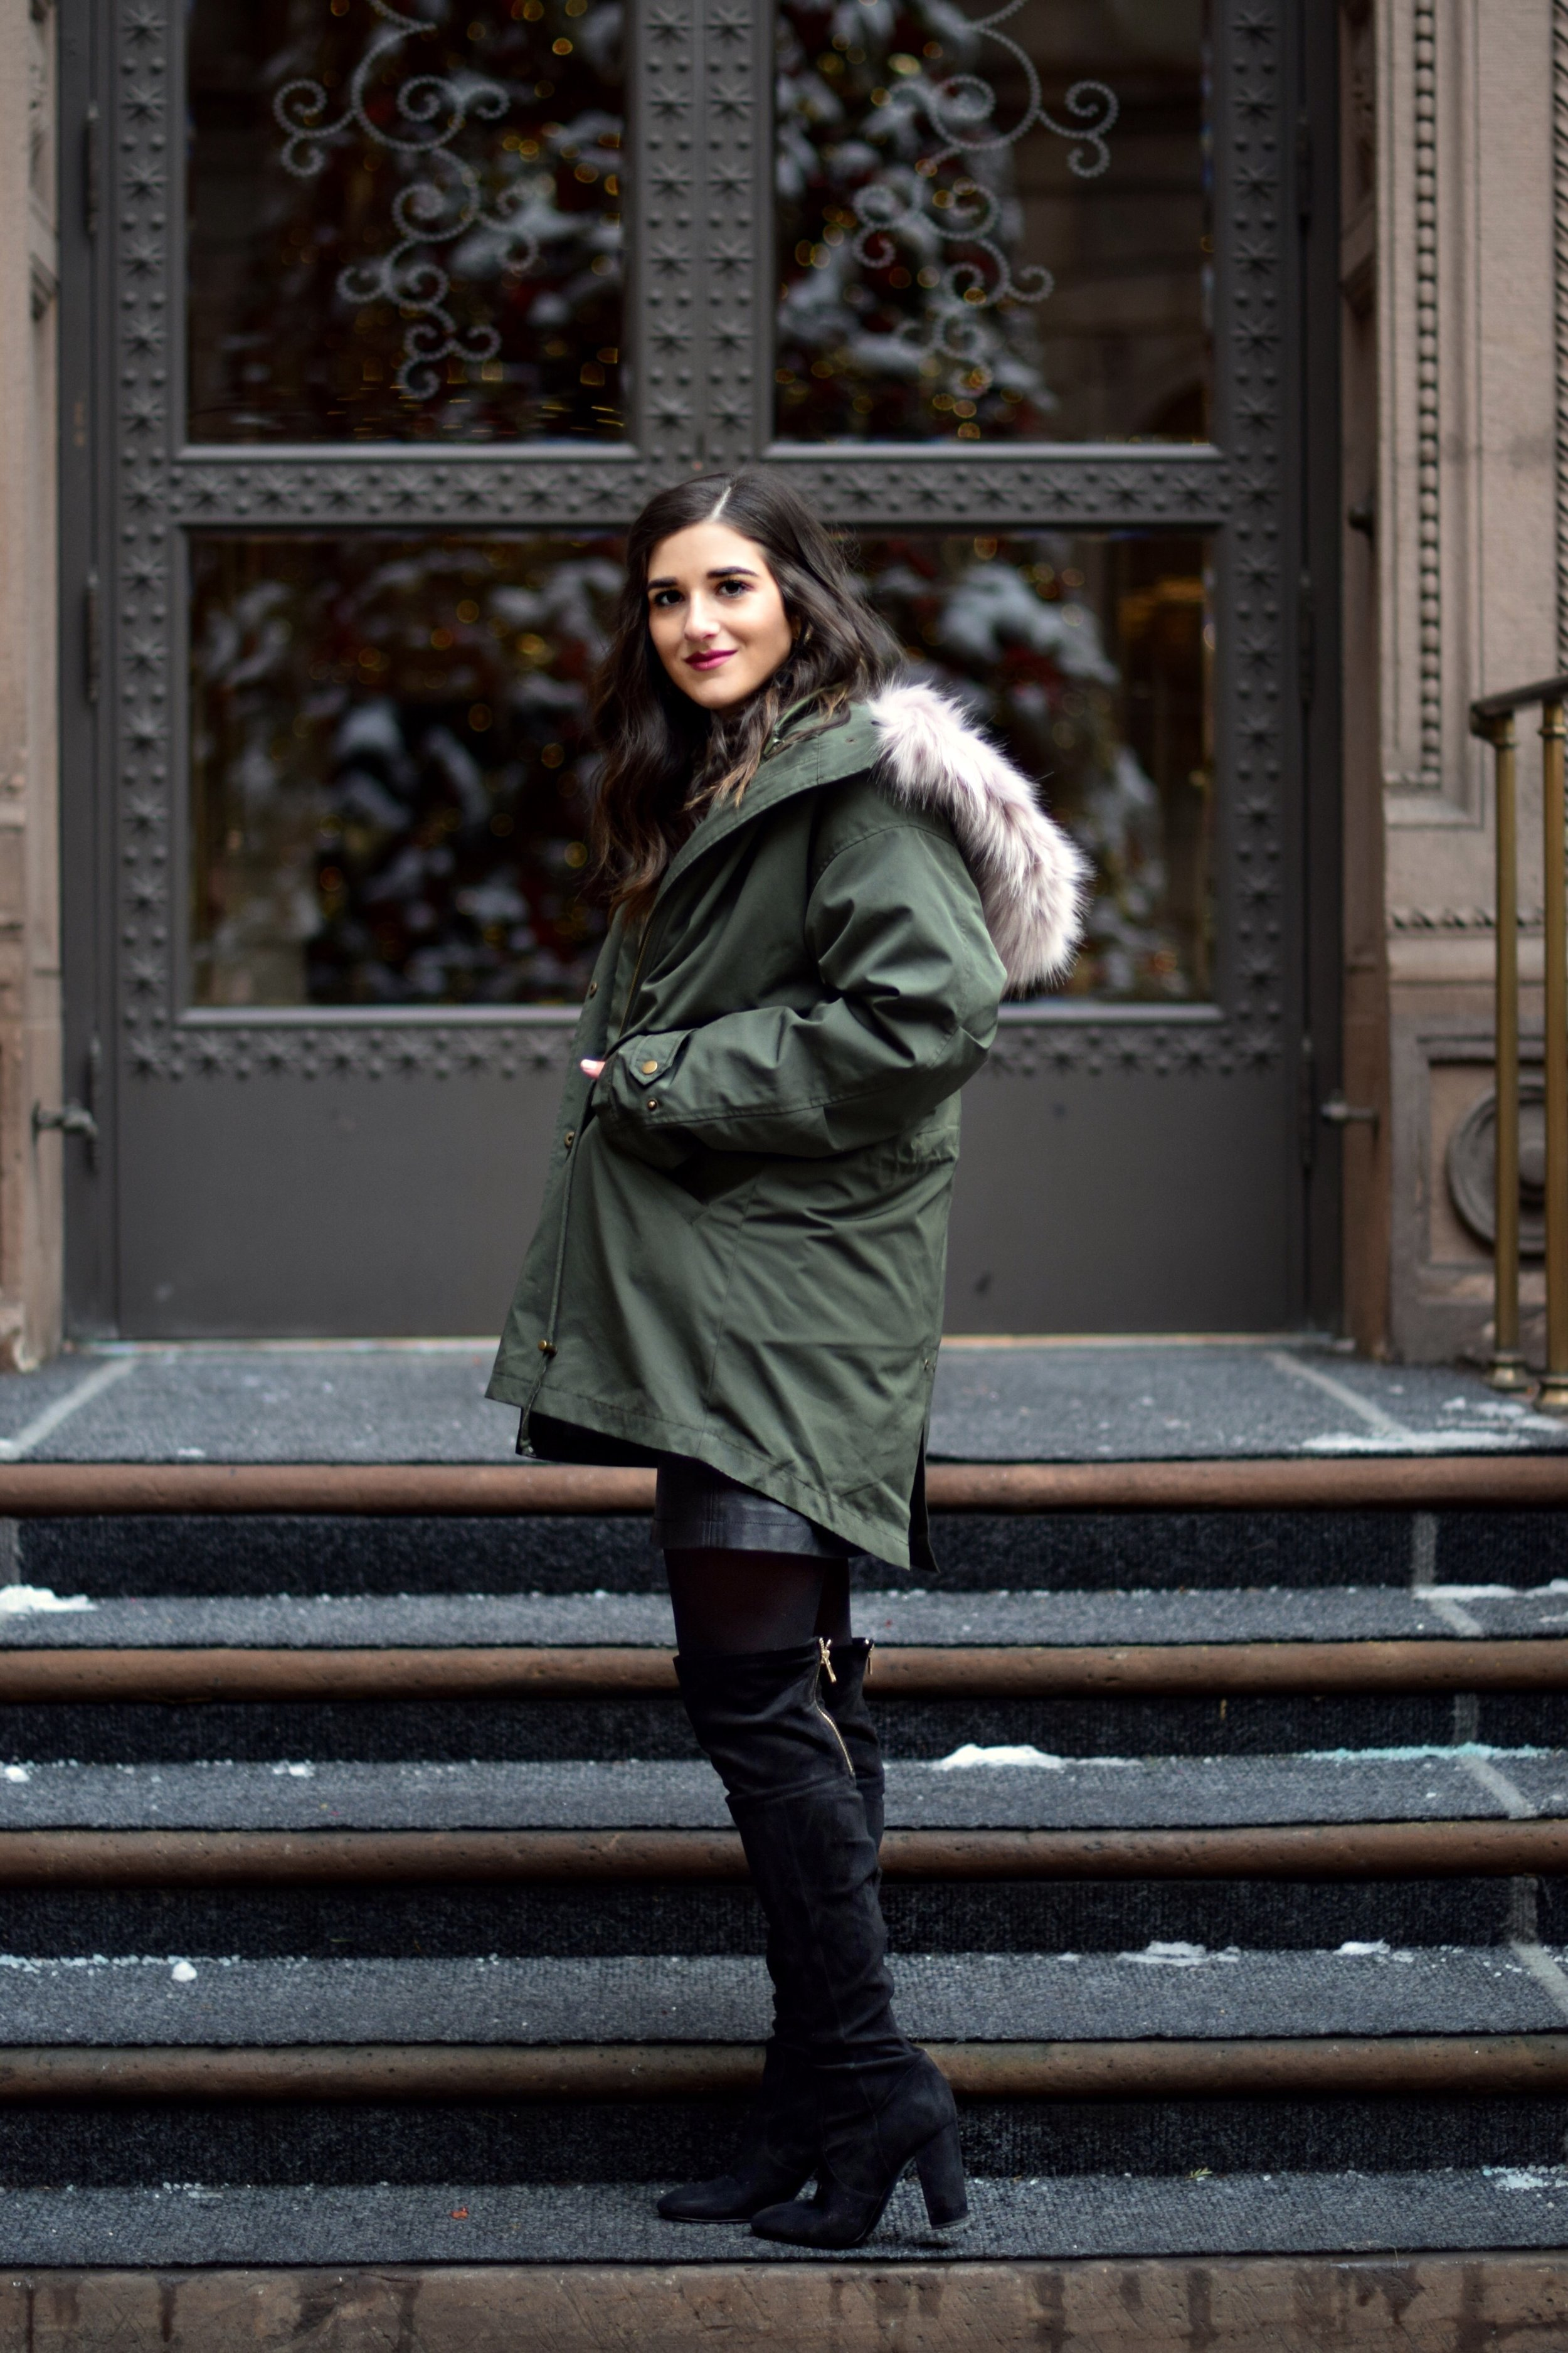 The Perfect Parka 10 Coats To Gift This Season Esther Santer Fashion Blog NYC Street Style Blogger Outfit OOTD Trendy Urban Outfitters Jacket Coat Girl Women Fur Hood Winter Black OTK Boots Cashmere Sweater Shoes Shopping Cold Weather Holiday Presents.jpg